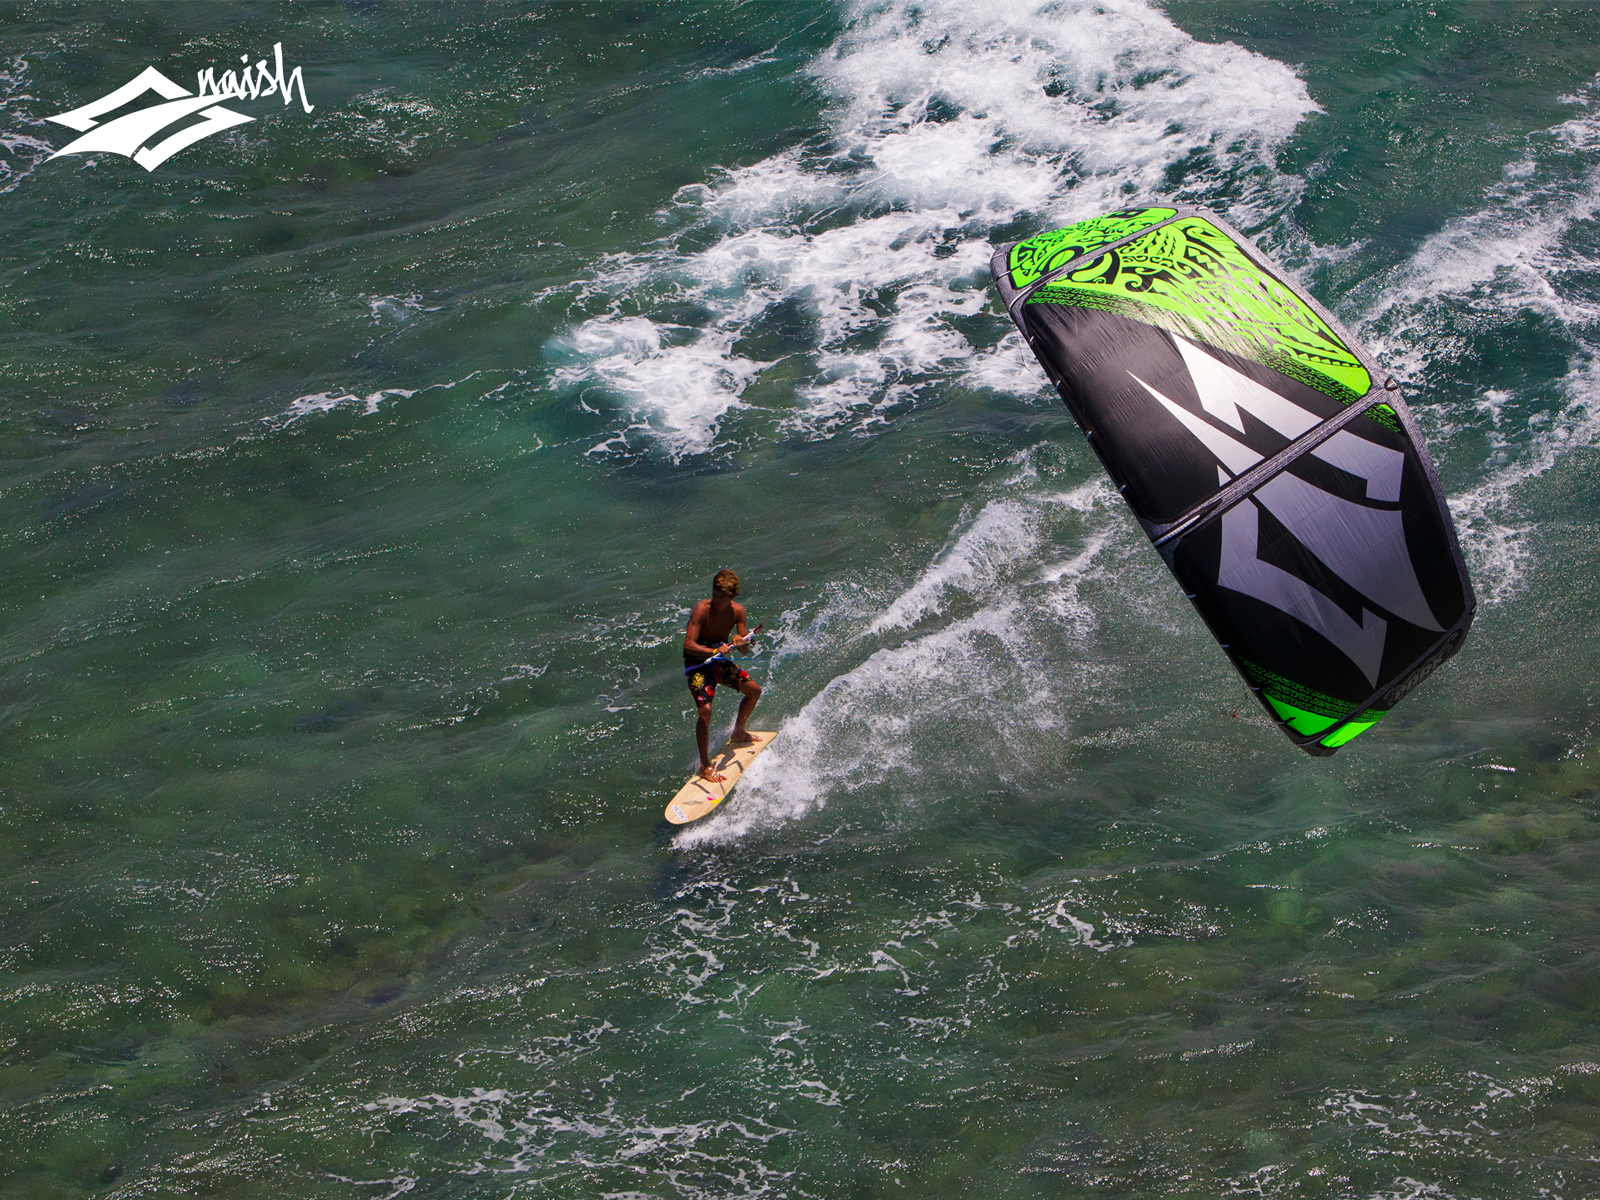 kitesurf wallpaper image - Kai Lenny cruising with the Naish Park kite and Alaia kiteboard off Hawaii - in resolution: Standard 4:3 1600 X 1200